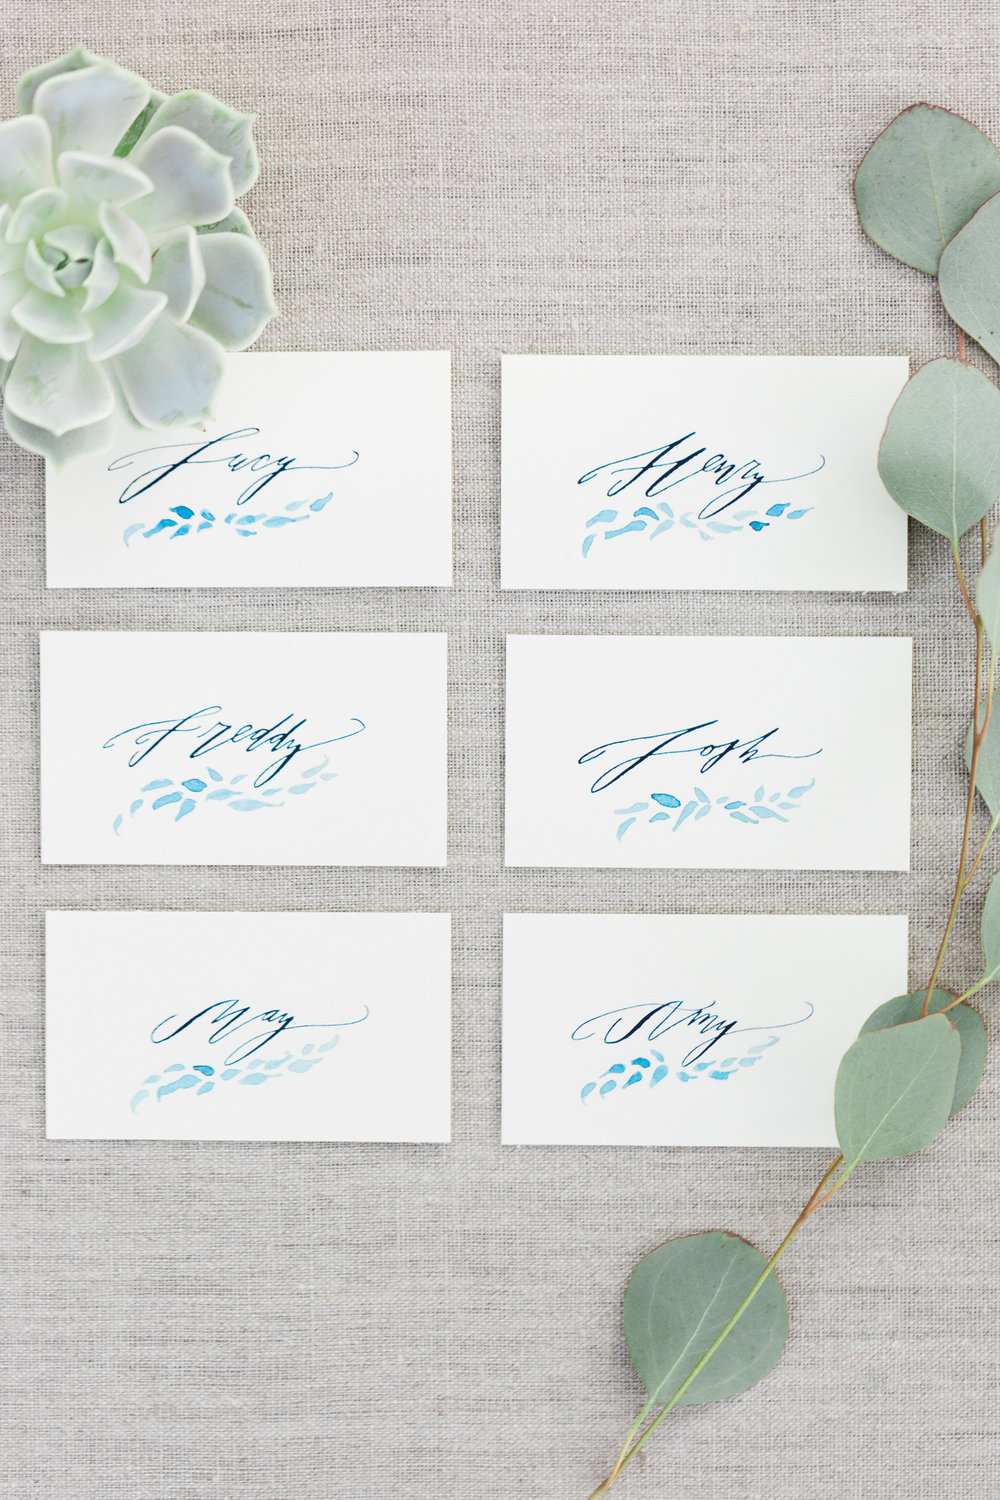 Beautiful place cards by Betsy Dunlap with indigo ink and leaf motifs